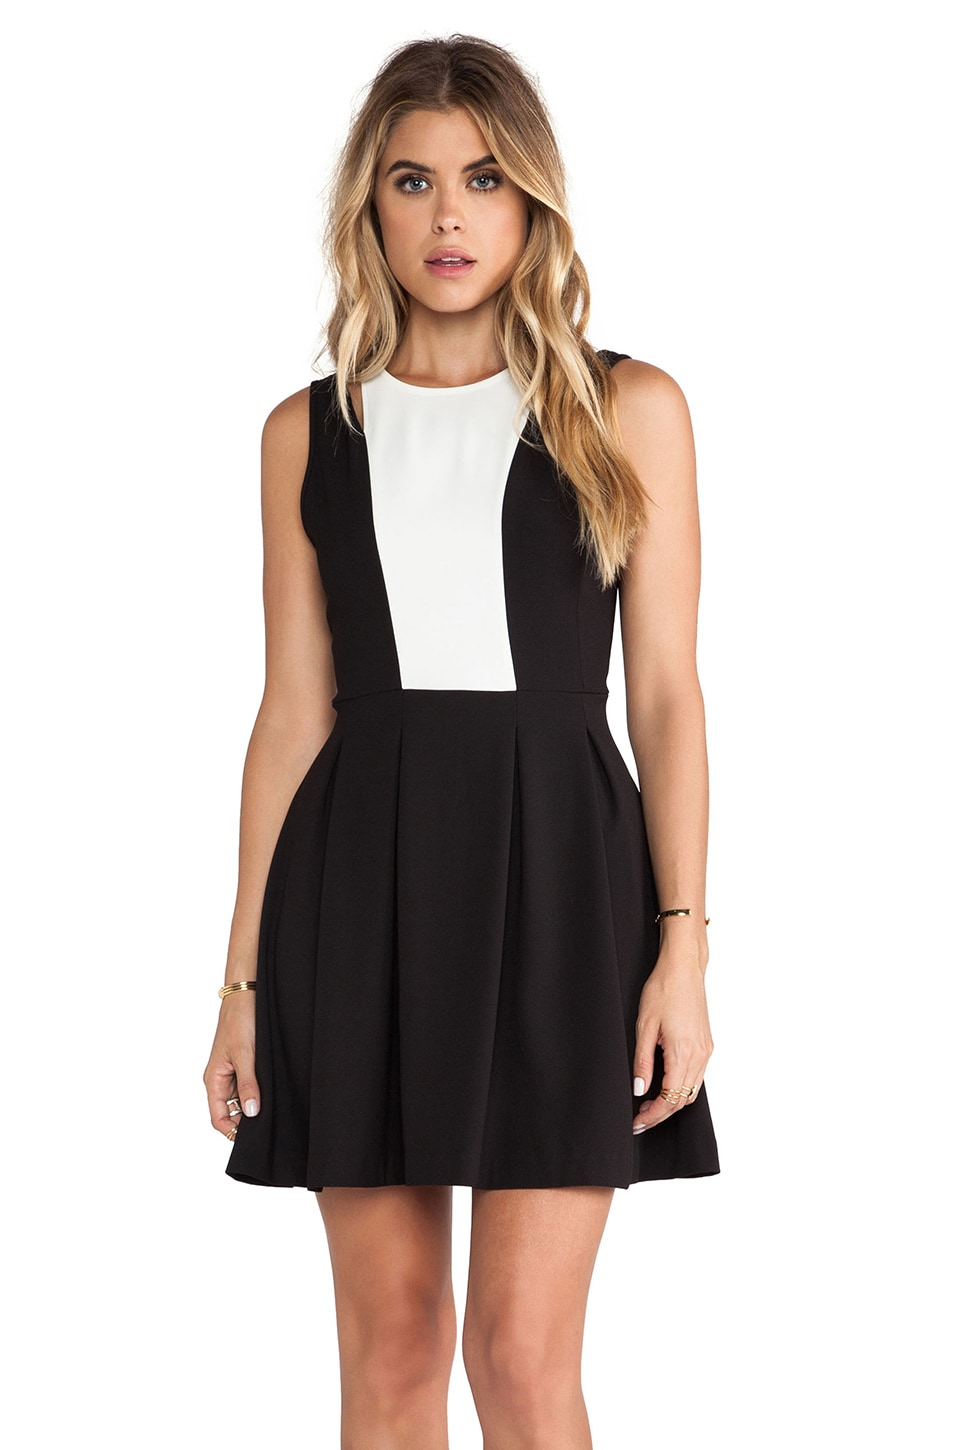 BB Dakota Barrett Dress in Black & White